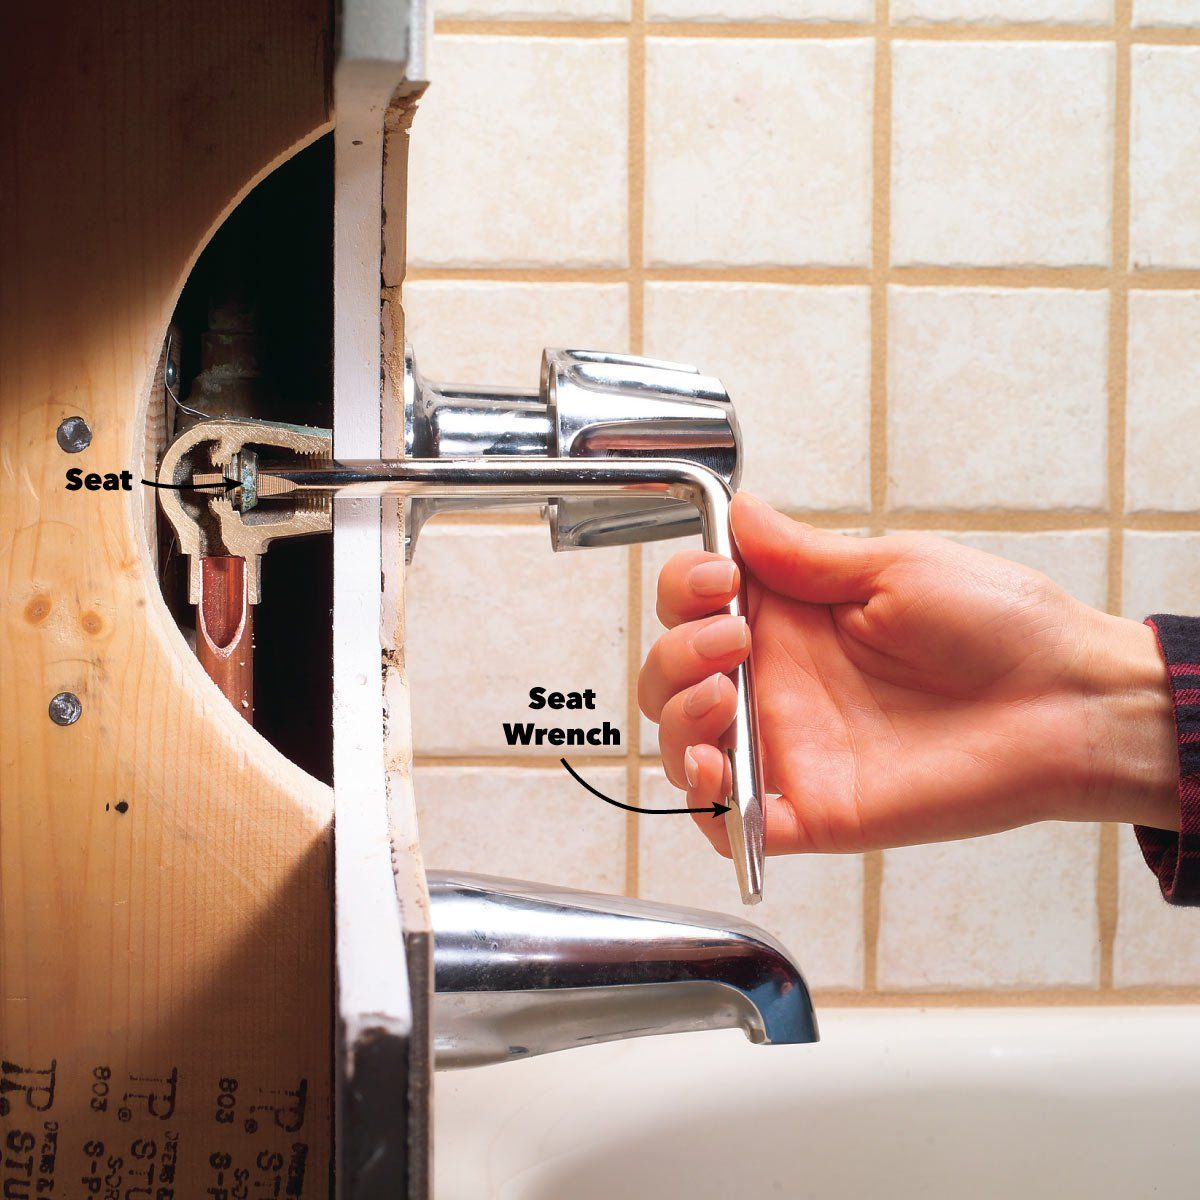 How To Fix A Leaking Bathtub Faucet Faucet Repair Faucet Leaky